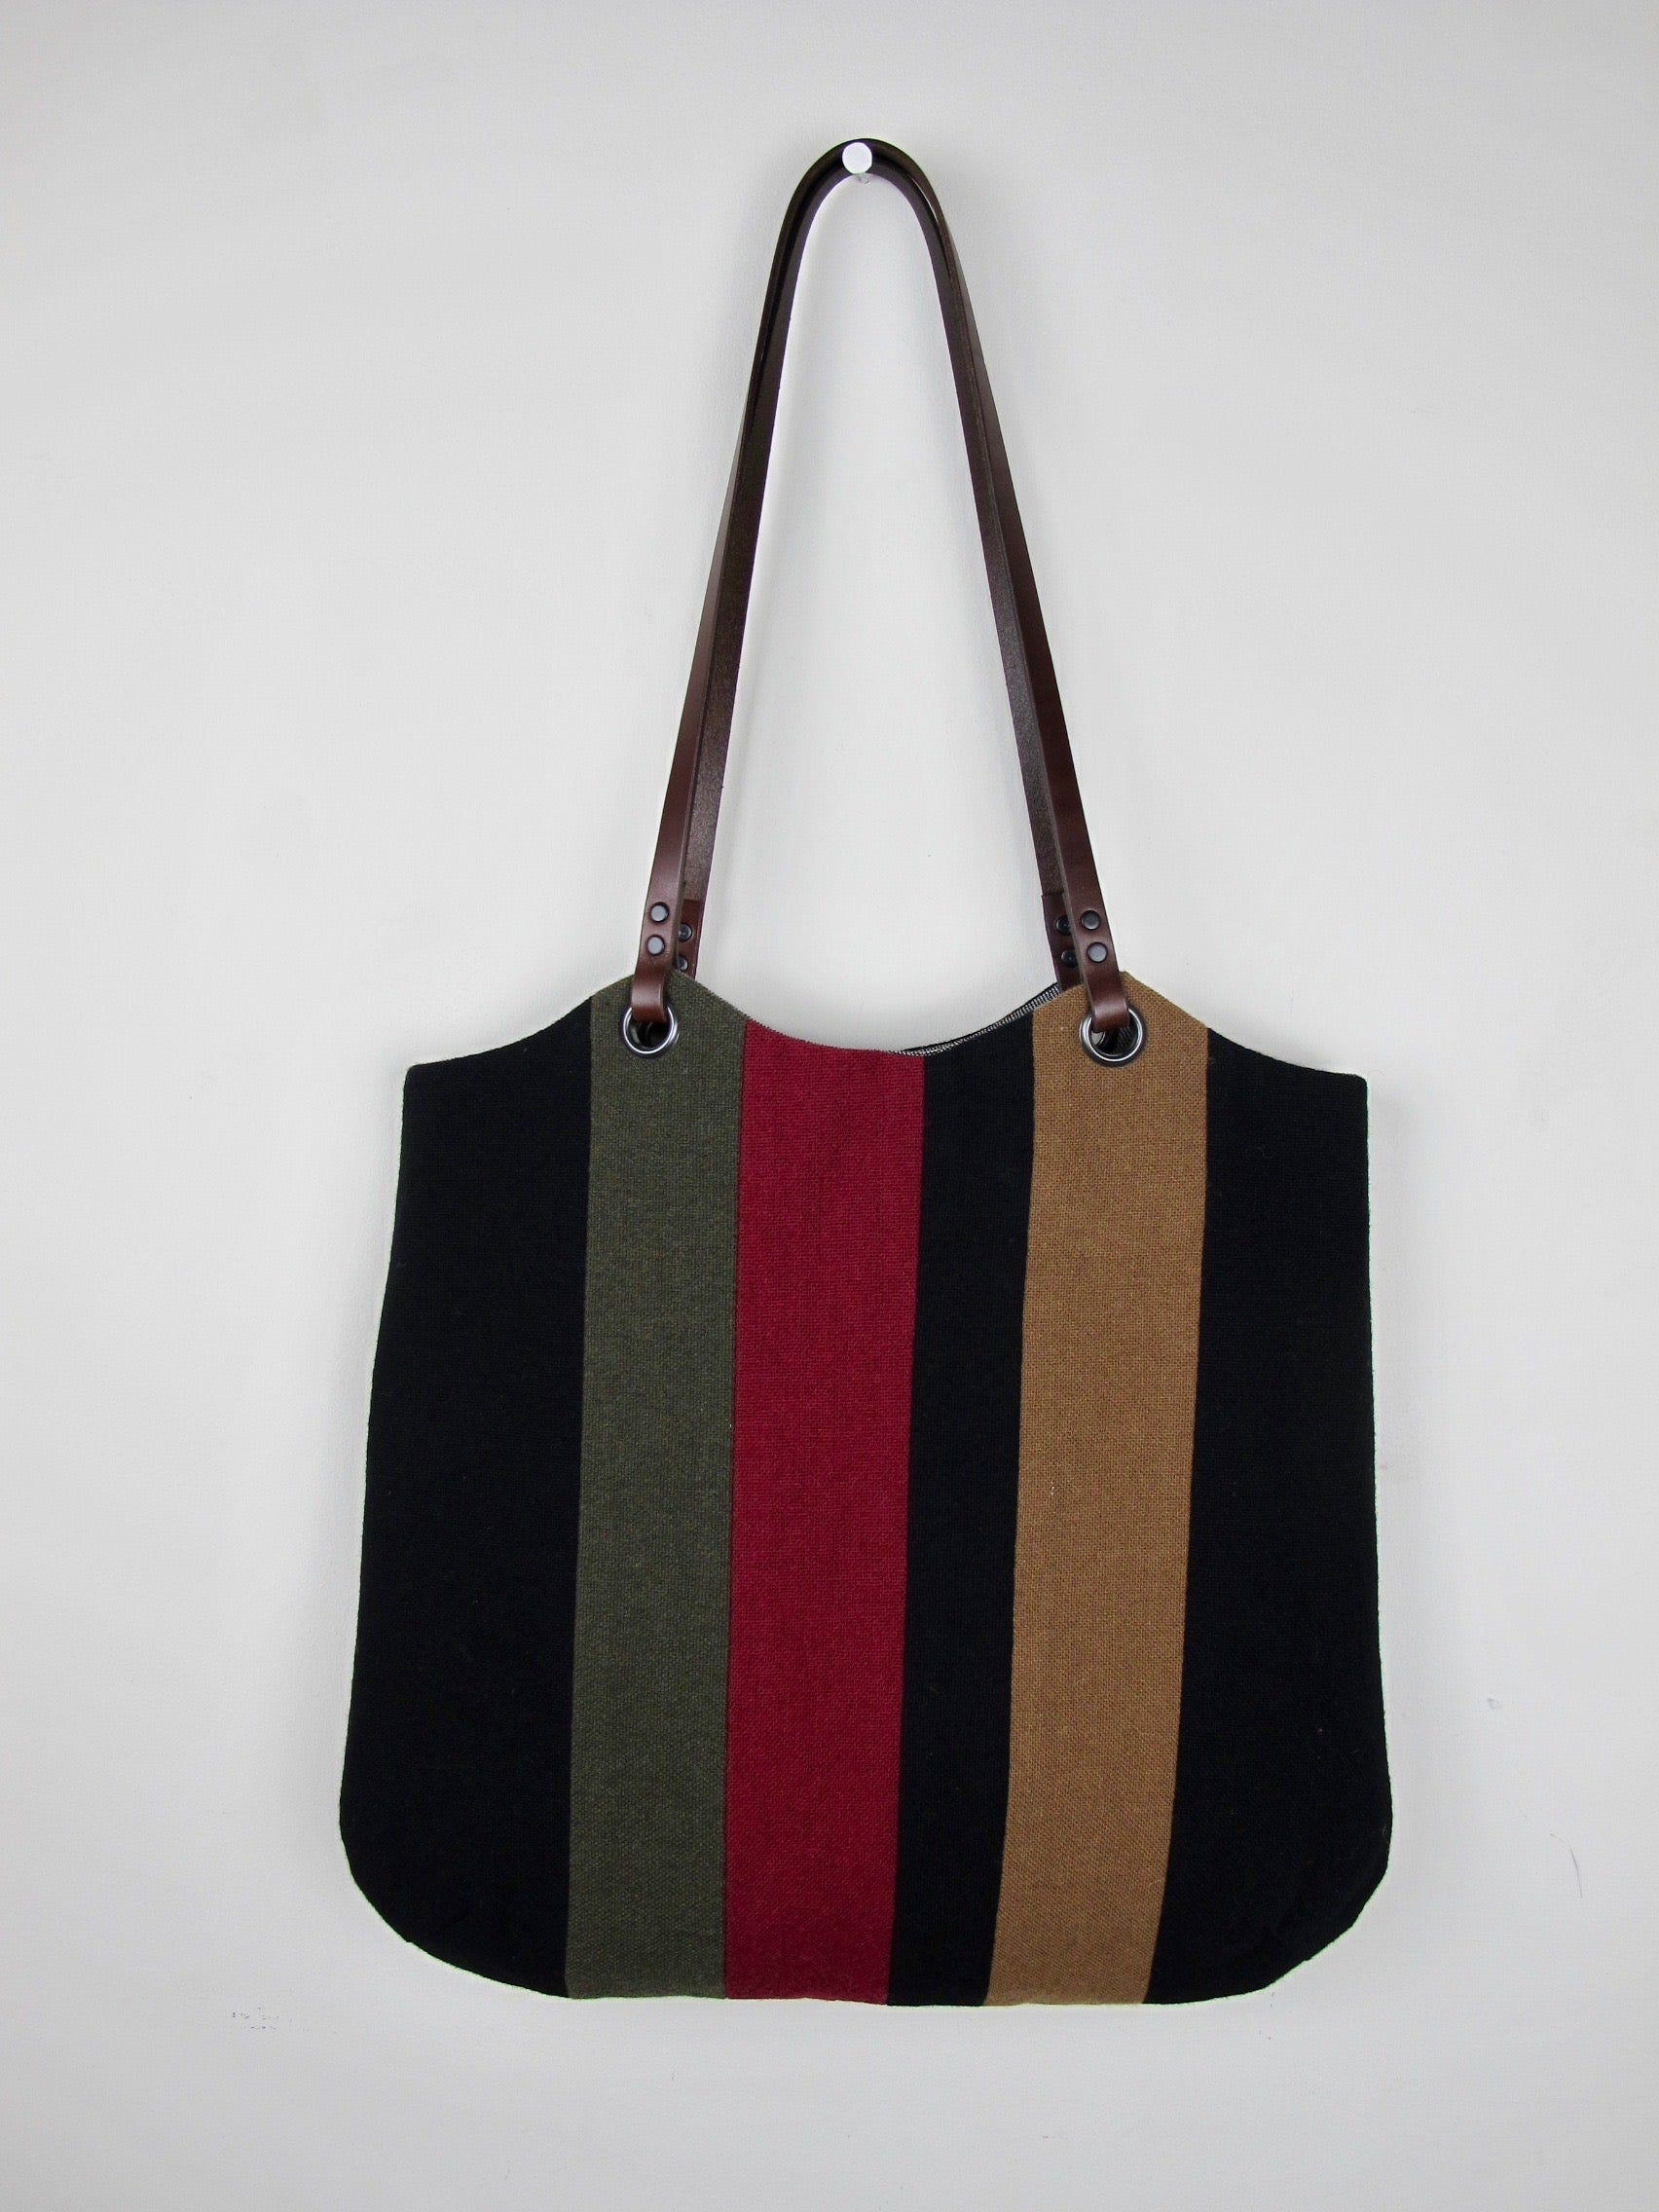 Patchwork Tote Bag - old school black I